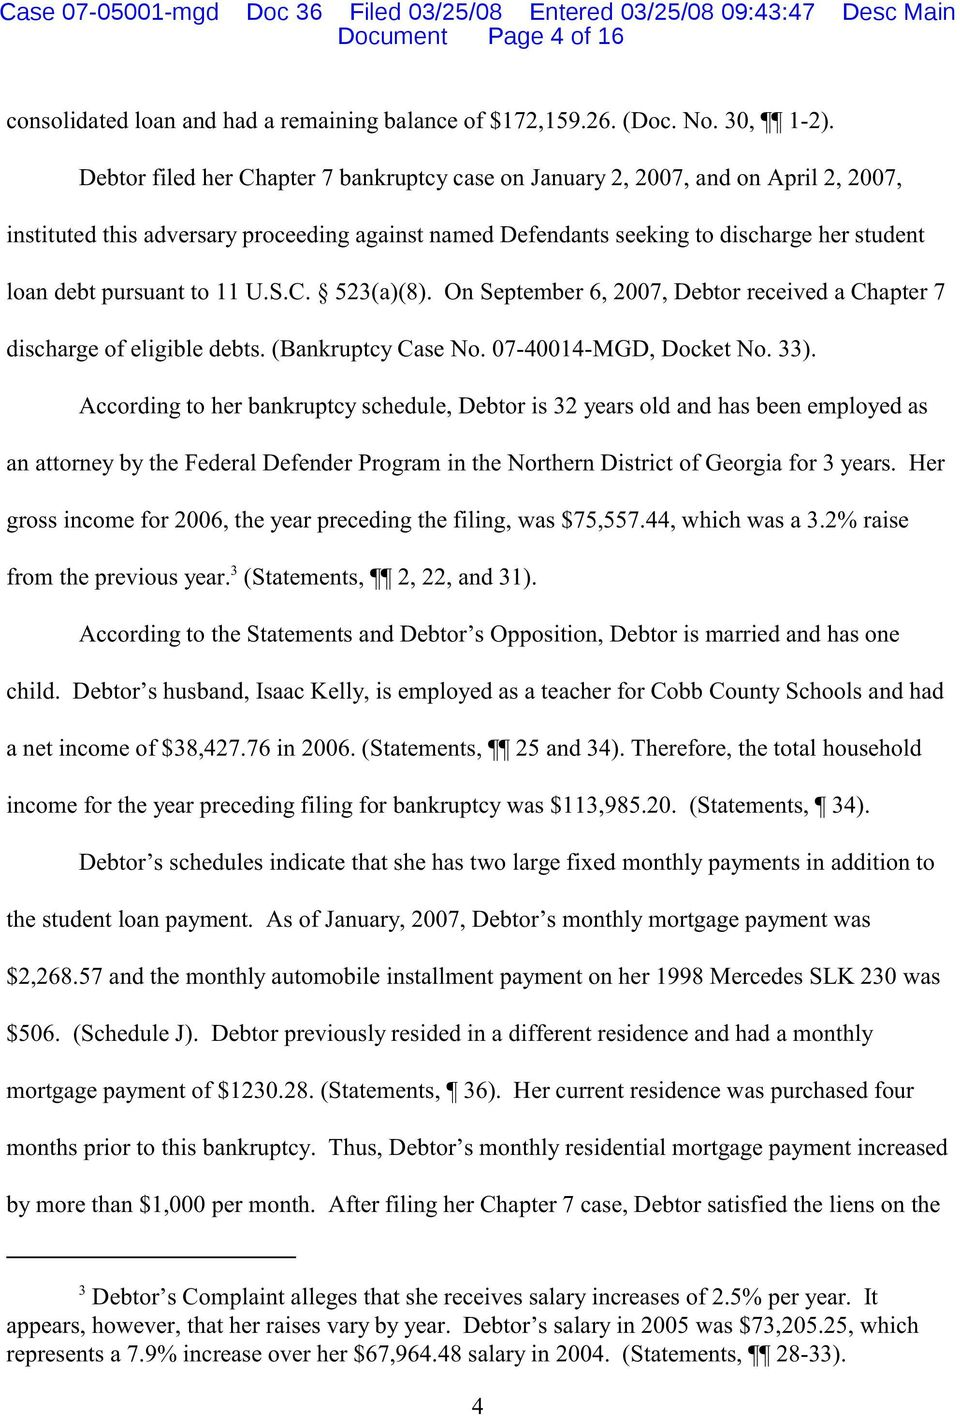 to 11 U.S.C. 523(a)(8). On September 6, 2007, Debtor received a Chapter 7 discharge of eligible debts. (Bankruptcy Case No. 07-40014-MGD, Docket No. 33).